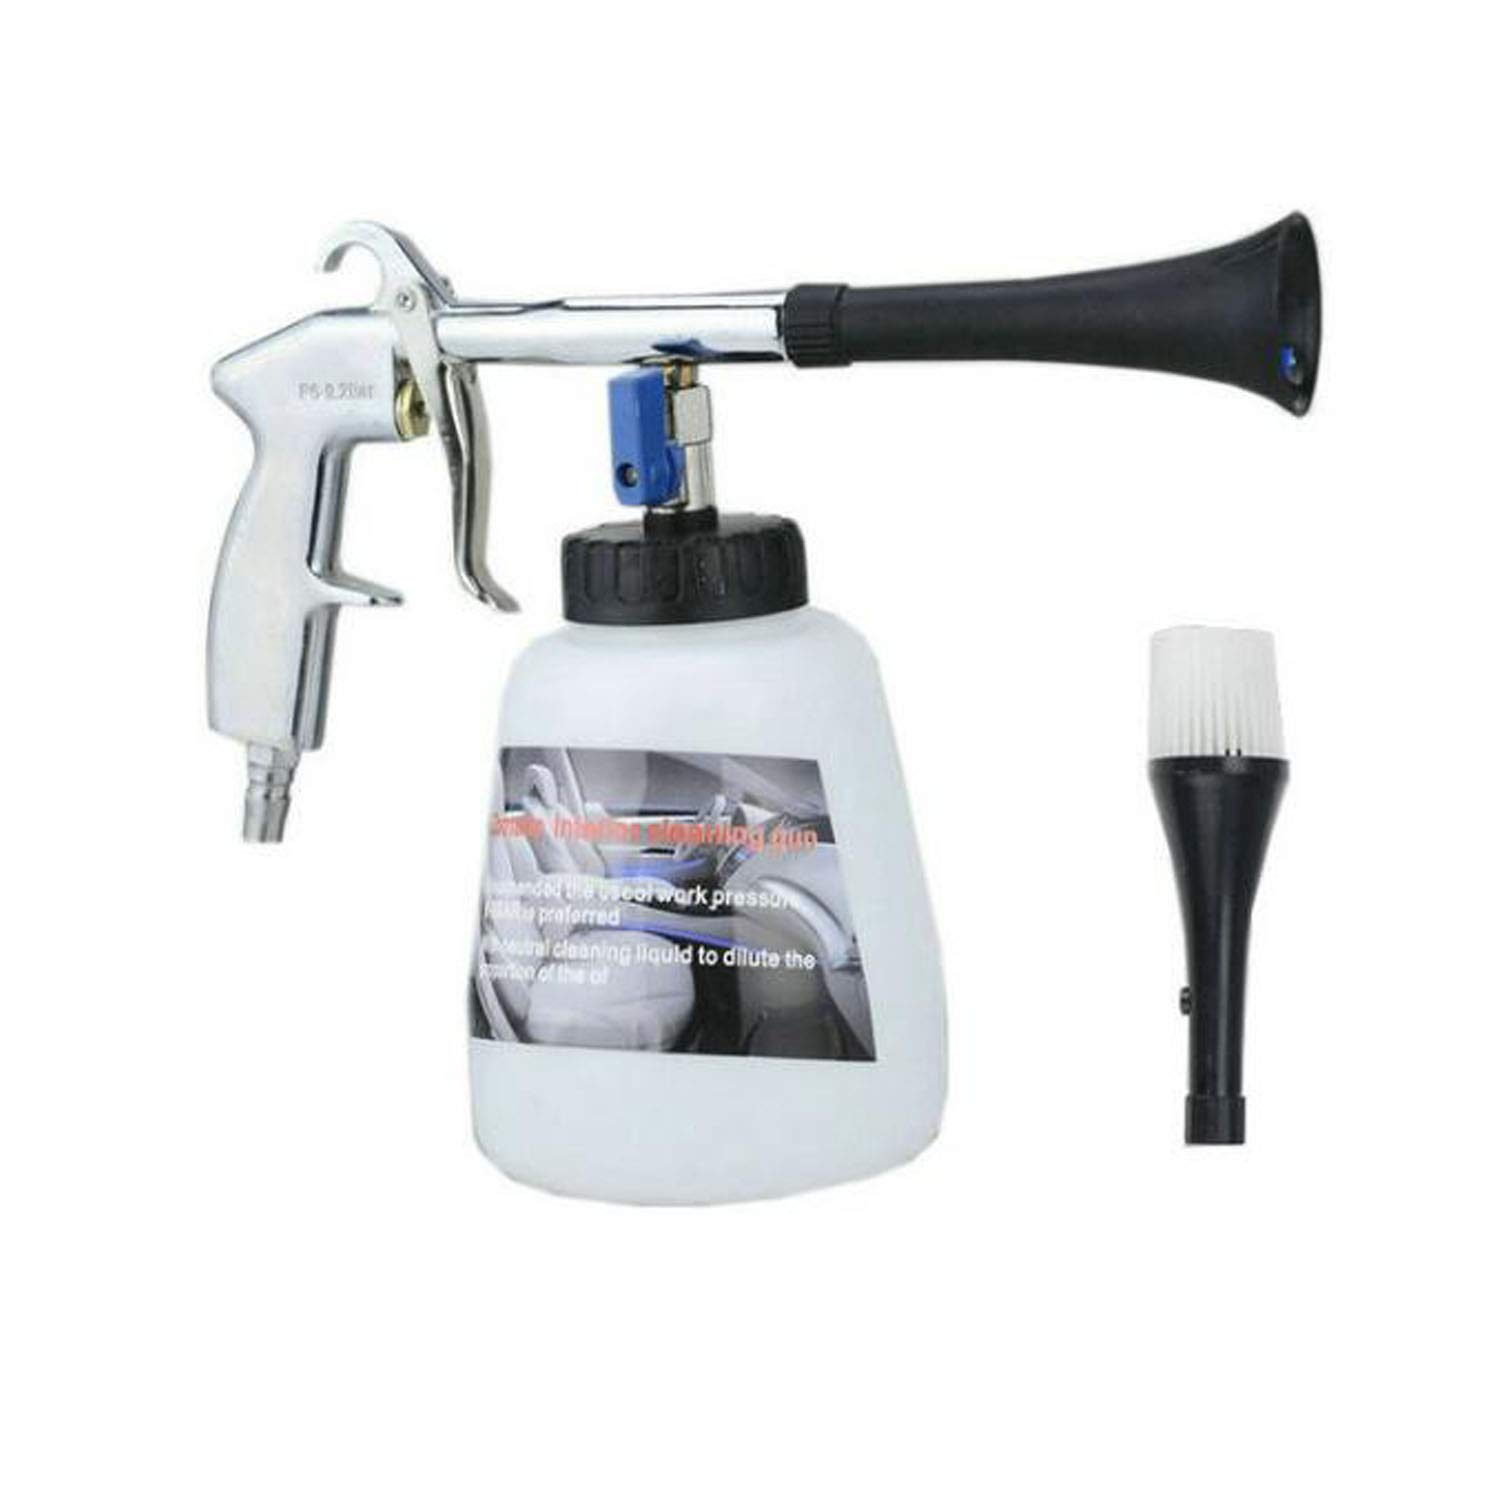 Dasen Car Cleaning Gun, Car Care Interior Cleaning Kit Tool with Nozzle Sprayer Connector